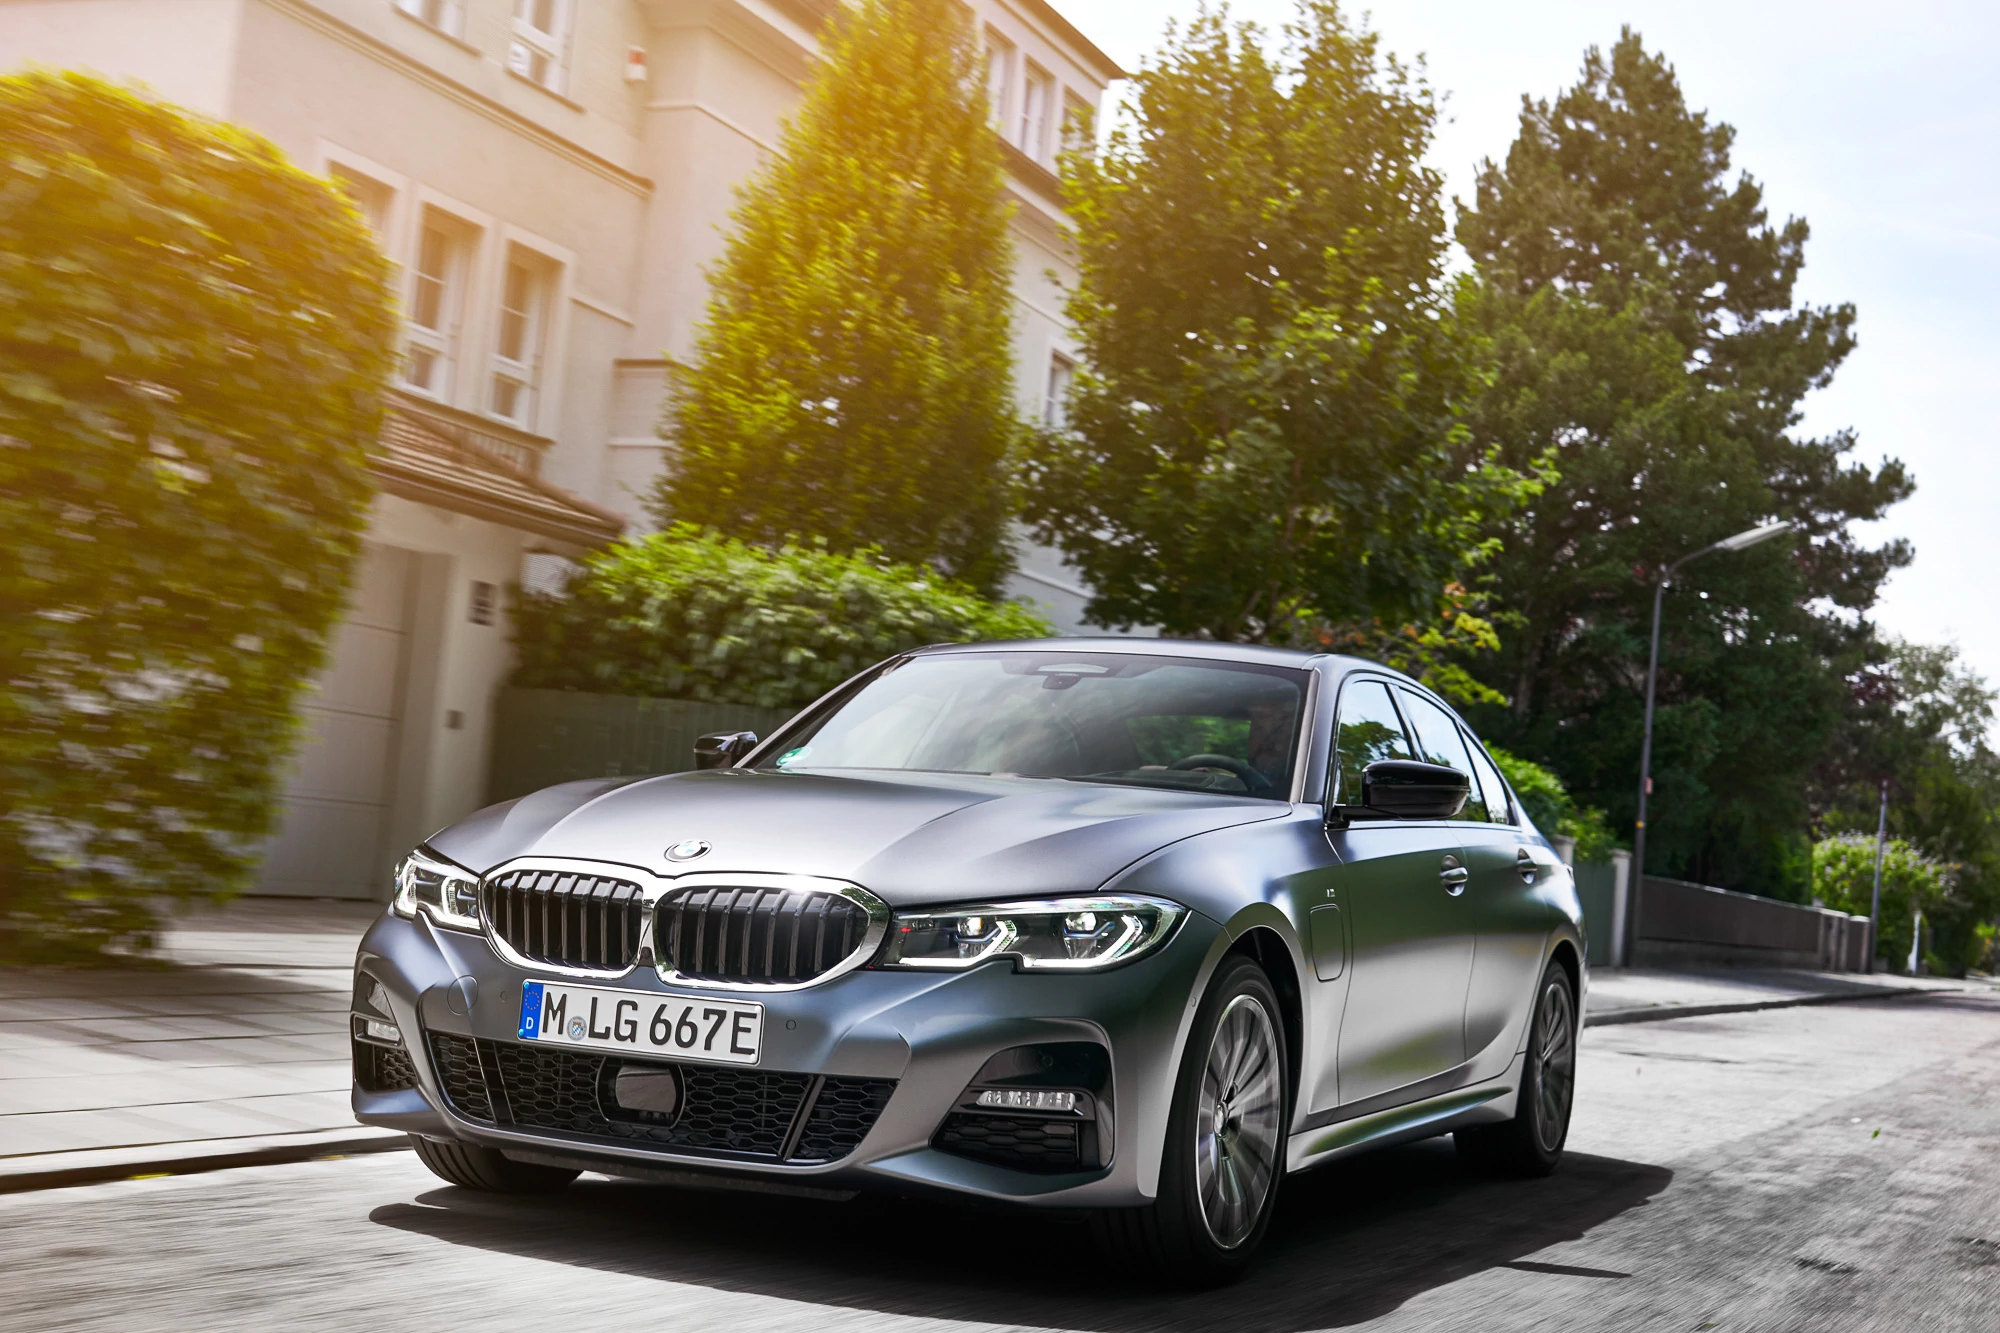 2021 BMW 3 Series Gets Plug-In Hybrid With Increased EV Range